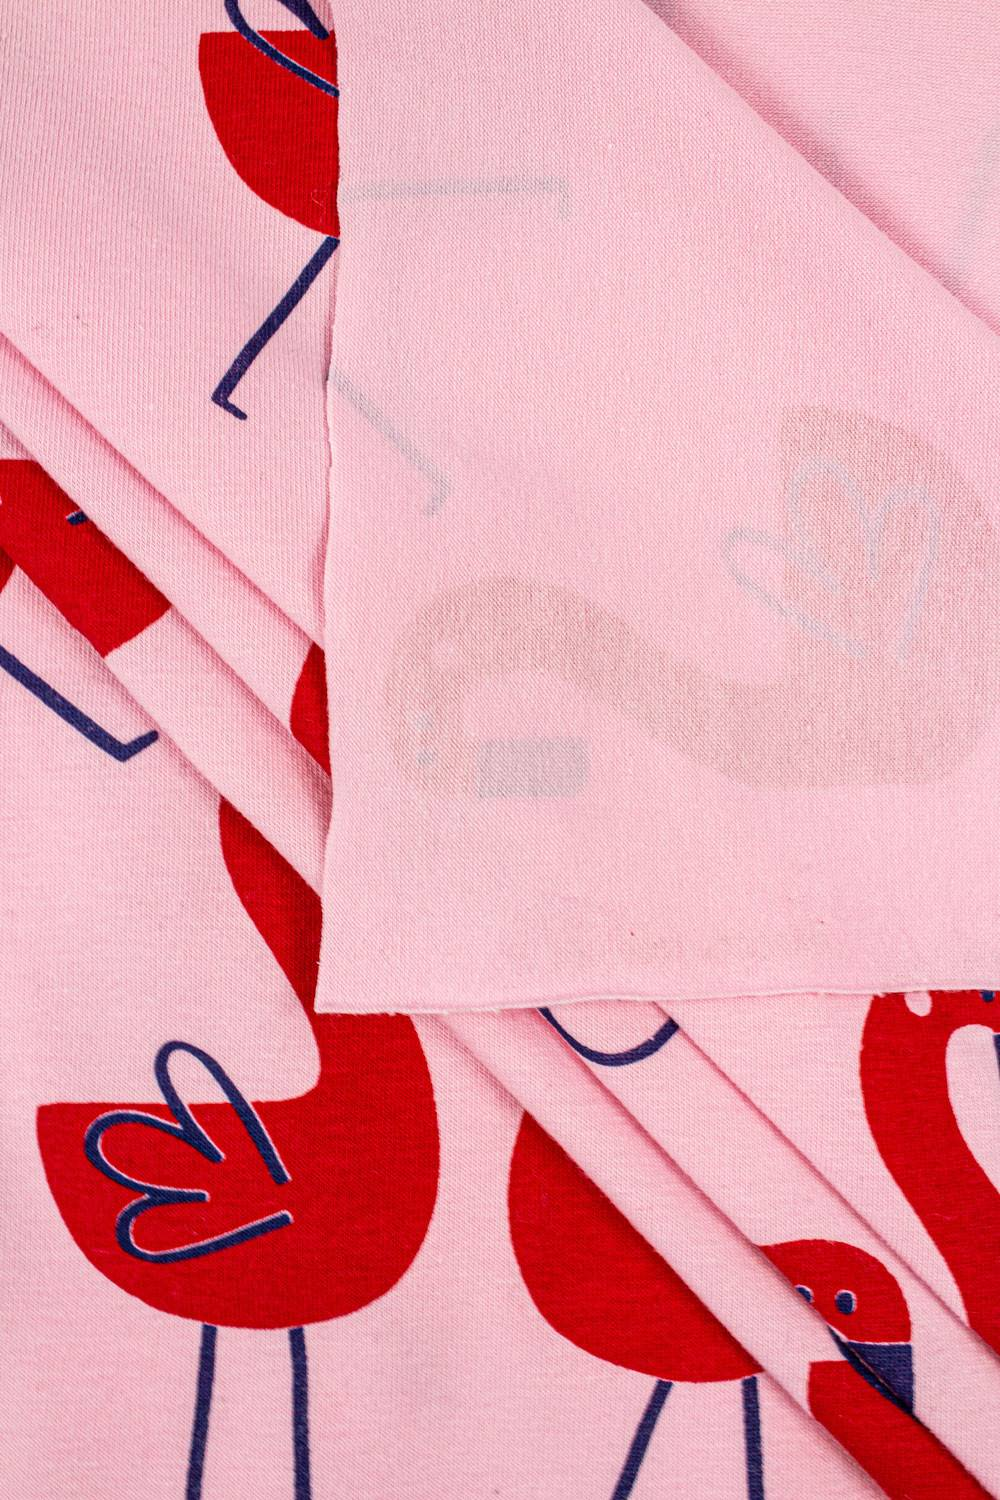 Knit - Jersey - Pink With Red Flamingos - 185 cm - 165 g/m2